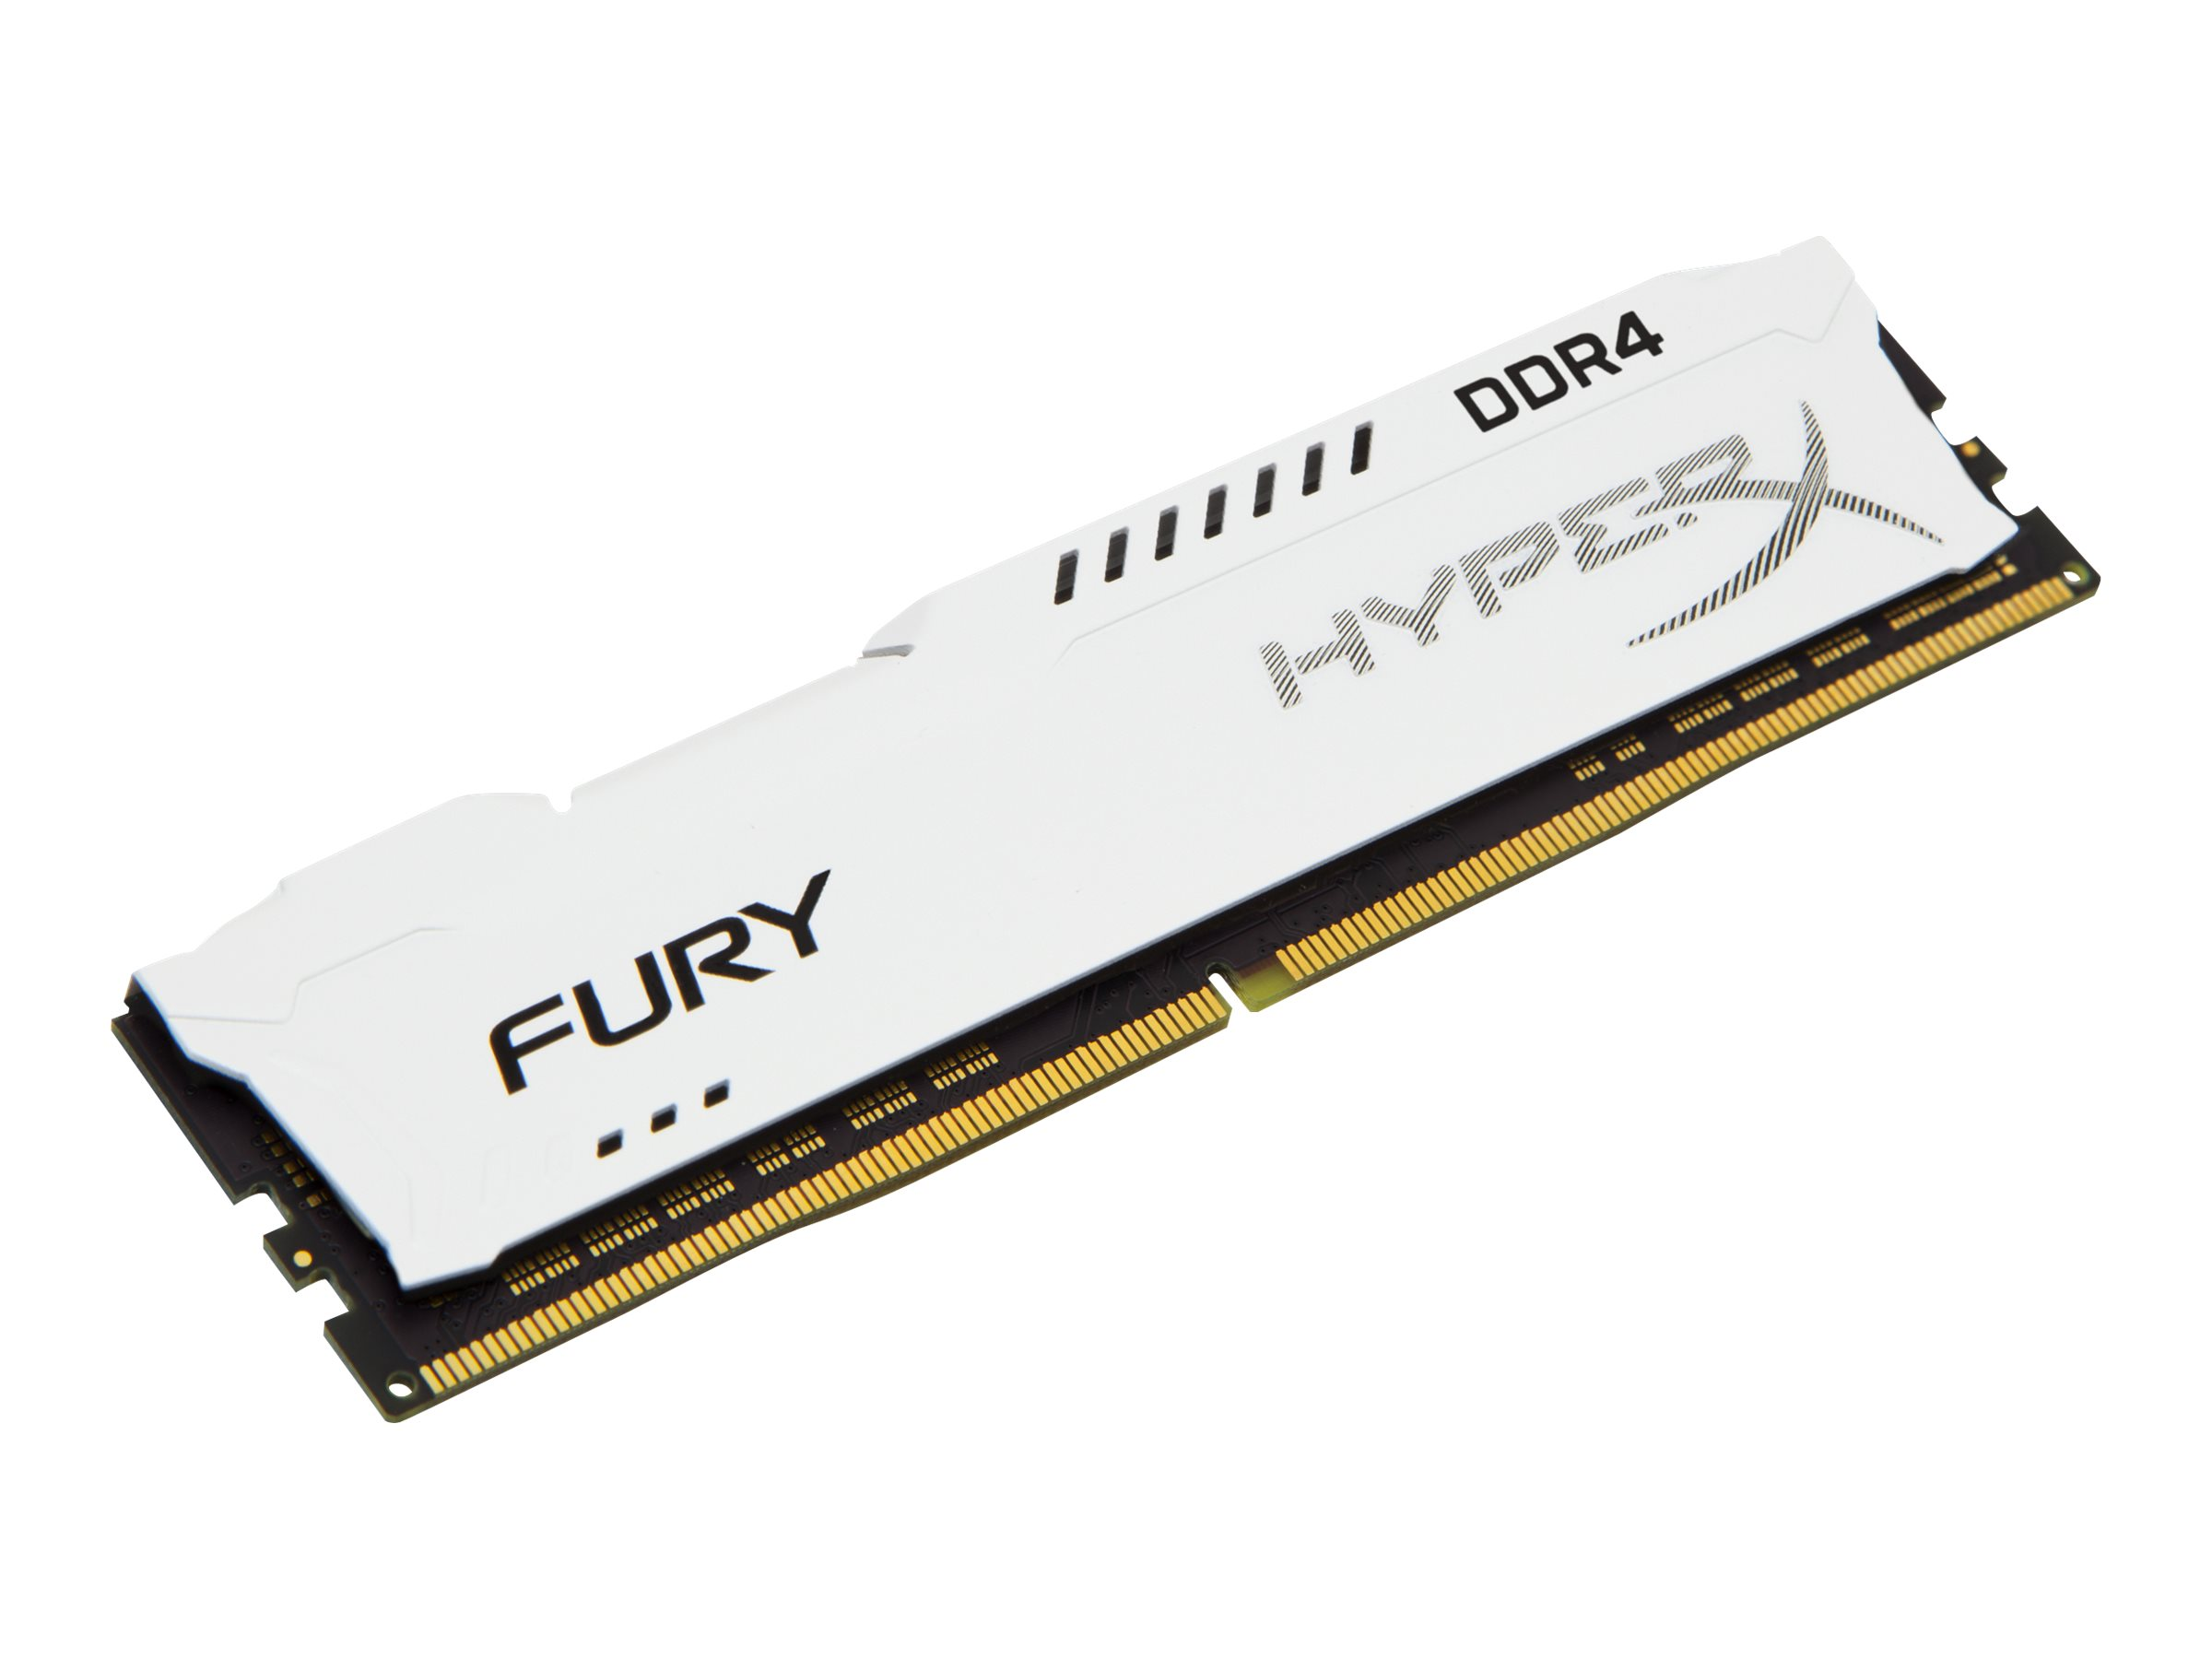 Kingston HyperX FURY - DDR4 - 8 GB - DIMM 288-PIN - 3200 MHz / PC4-25600 CL18 - 1.2 V - ungepuffert - non-ECC - weiß